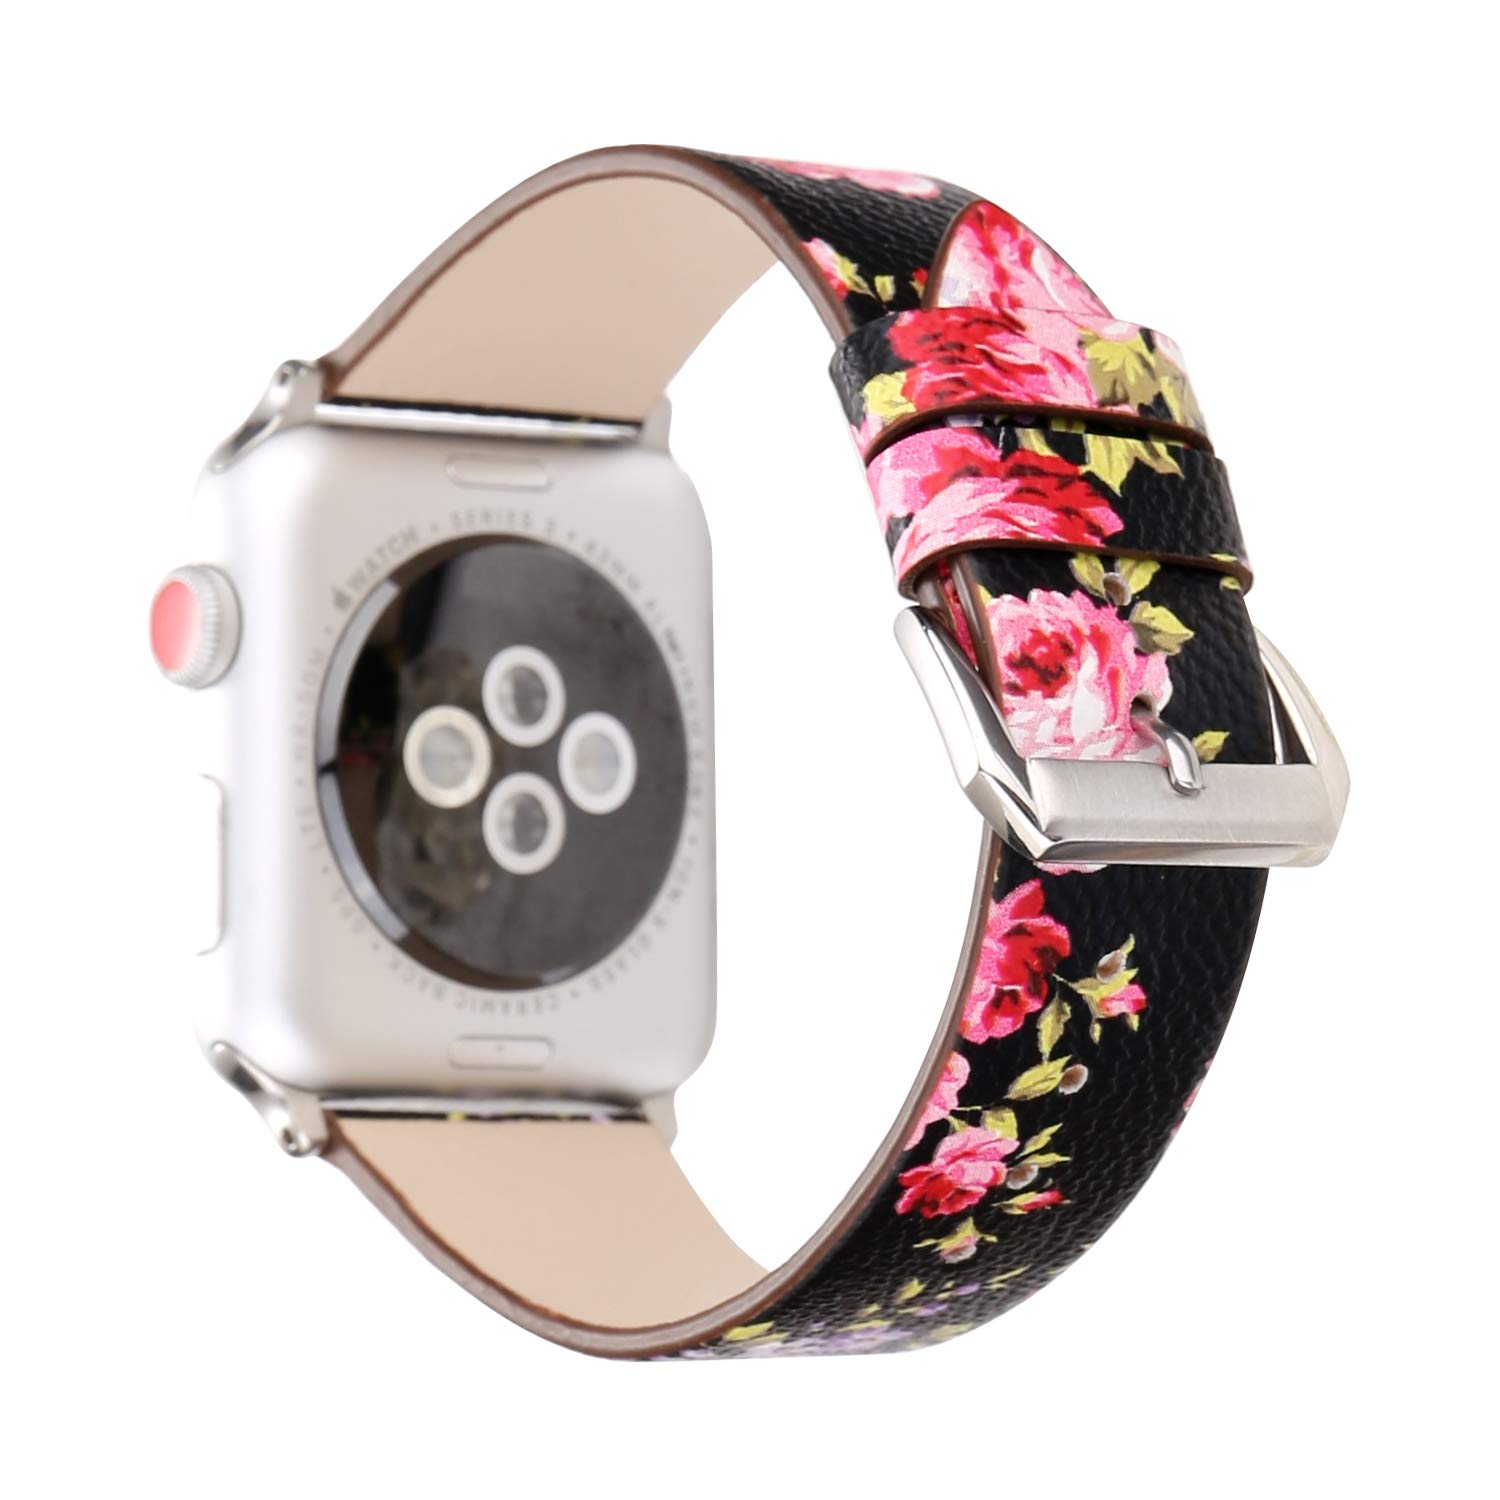 Pantheon Designer Leather Watch Band Compatible with Apple iWatch Series 4 3 2 1, 38mm / 40mm